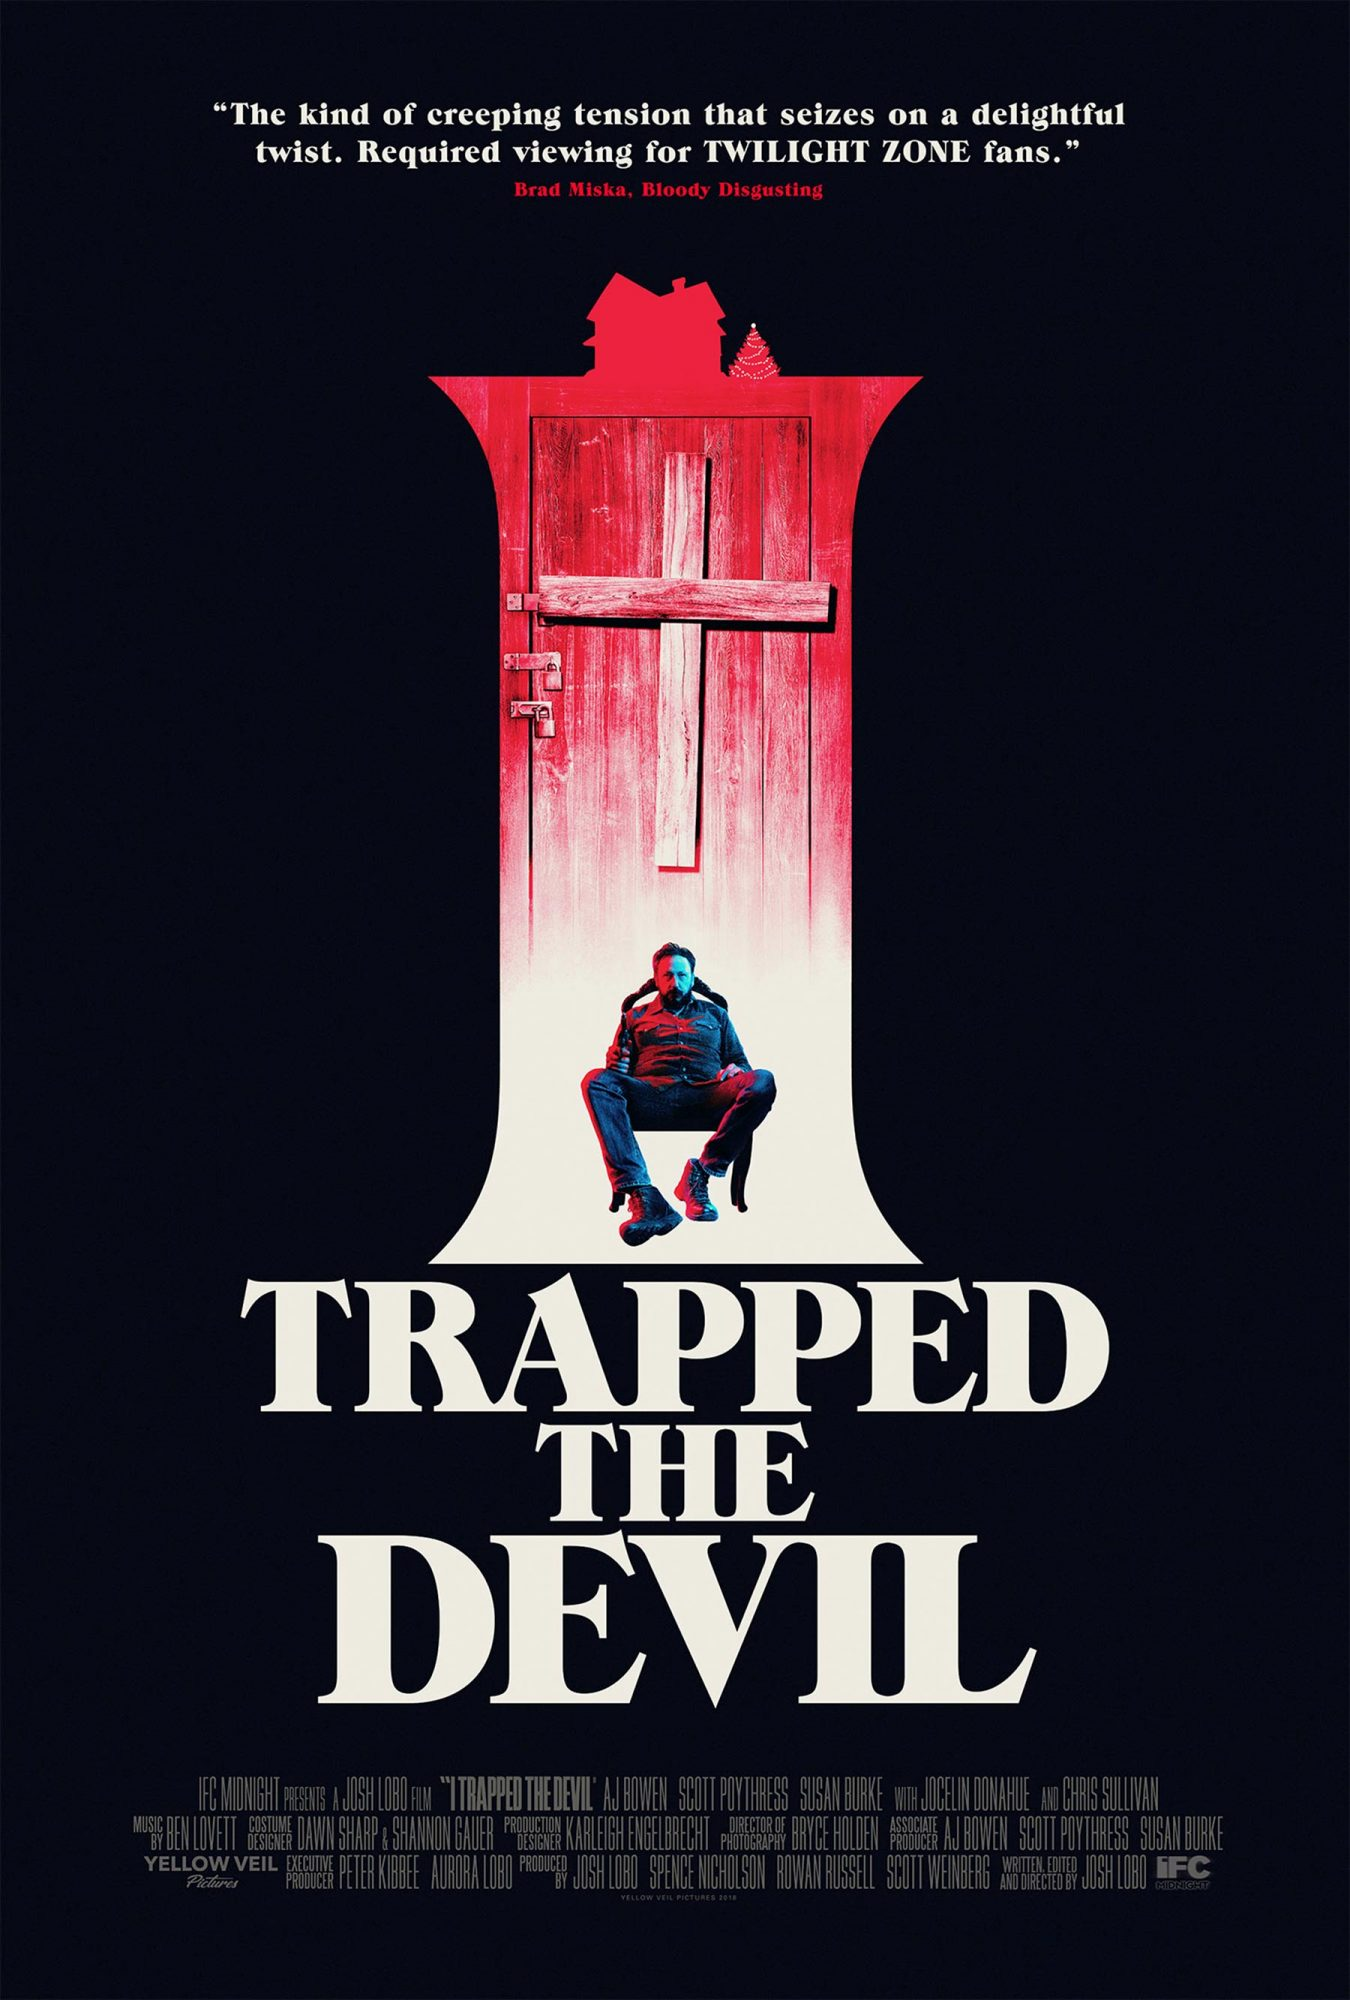 I Trapped the Devil movie posterCR: IFC Midnight